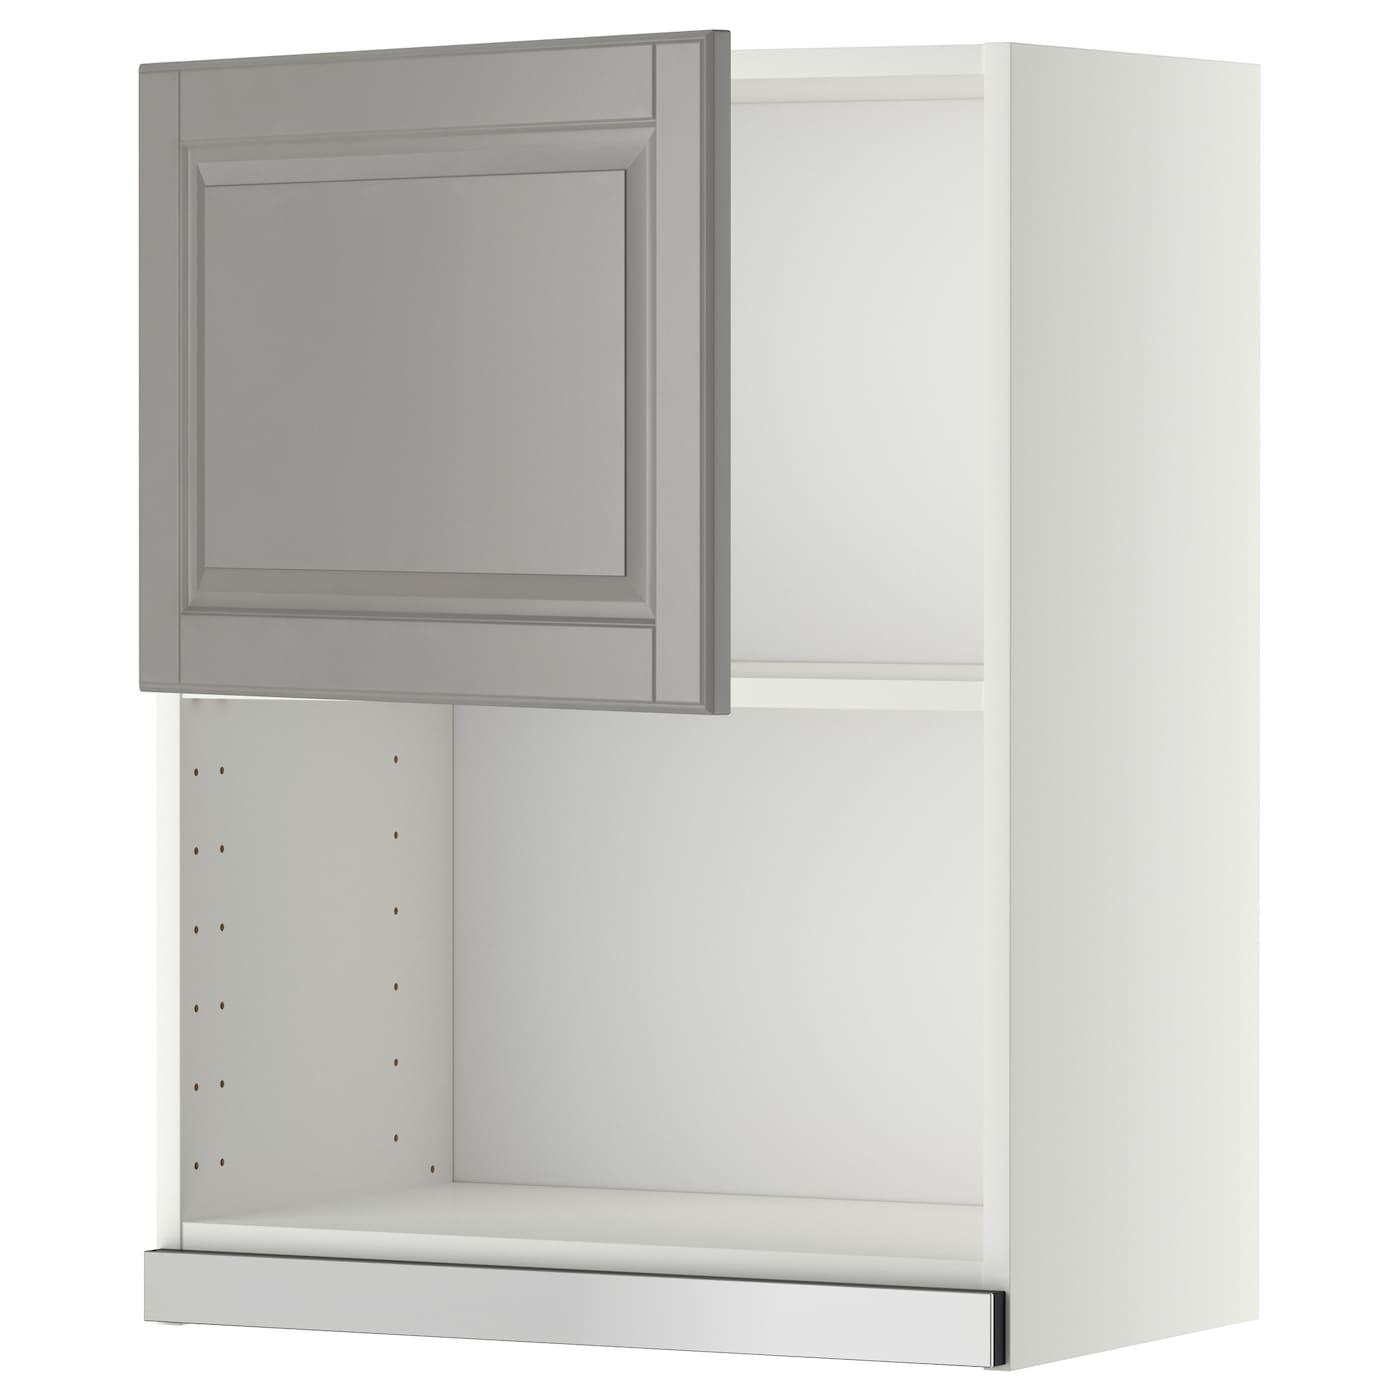 metod wall cabinet for microwave oven white bodbyn grey 60x80 cm ikea. Black Bedroom Furniture Sets. Home Design Ideas